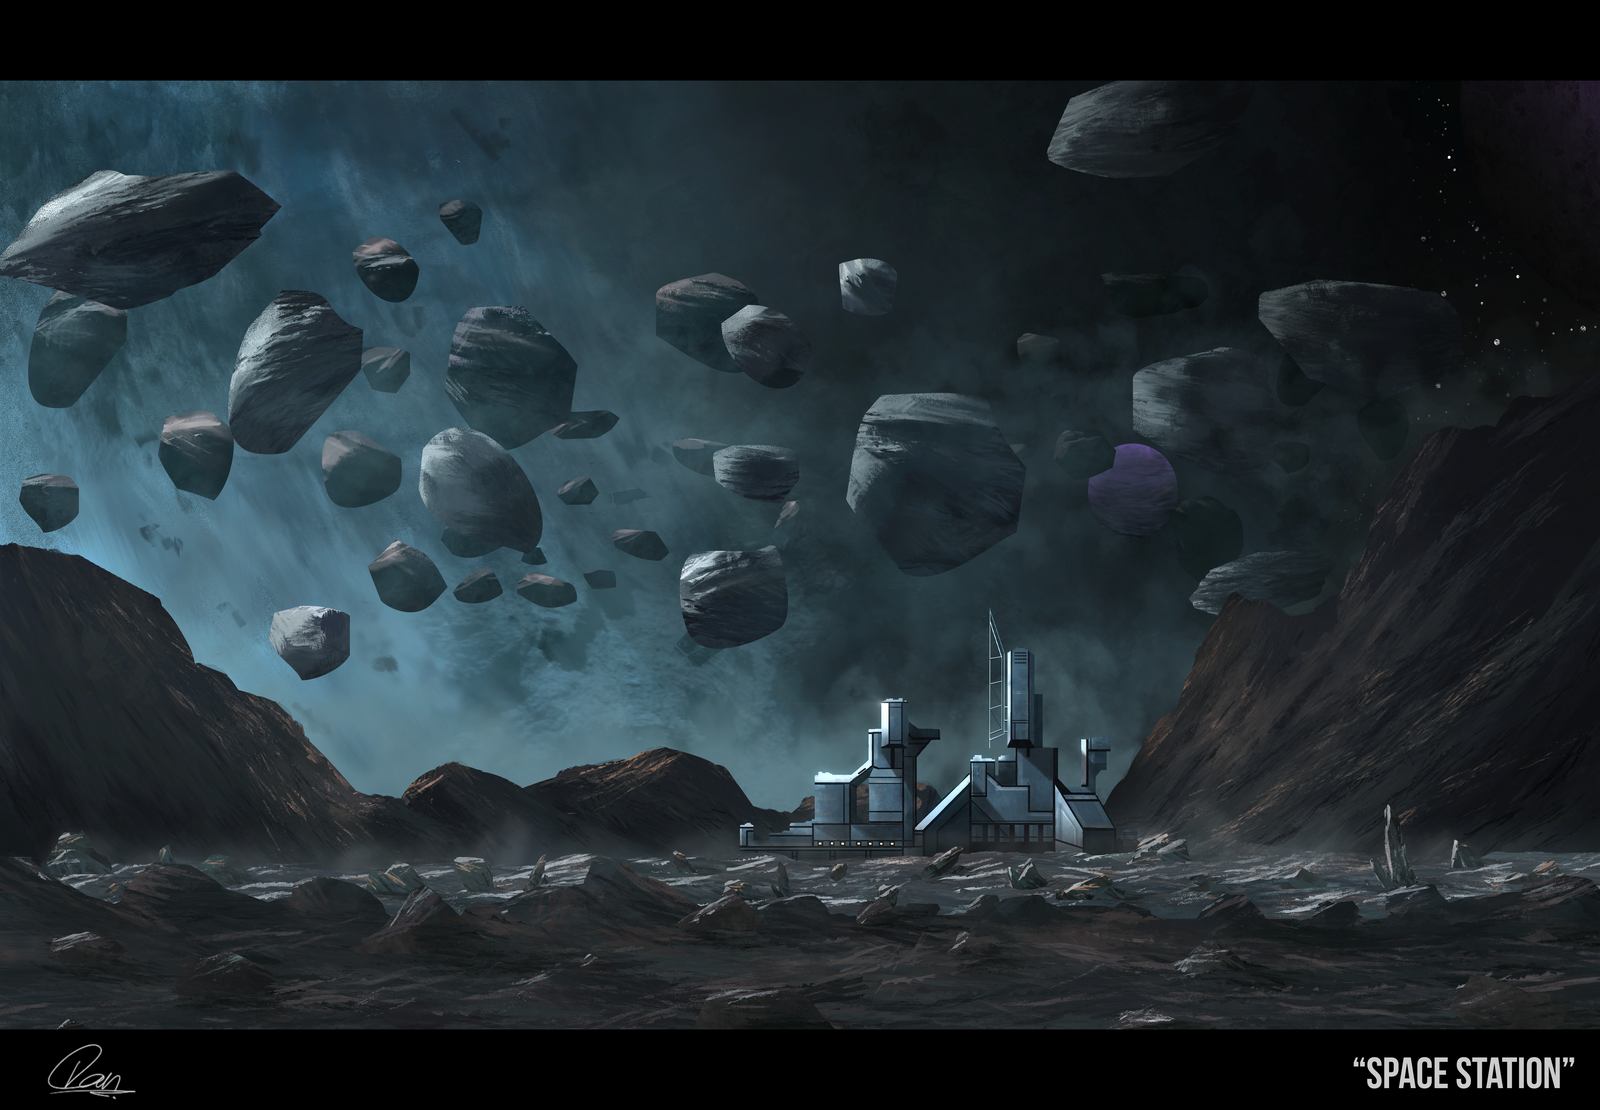 Concept Art - Space Station by DanaosC on DeviantArt